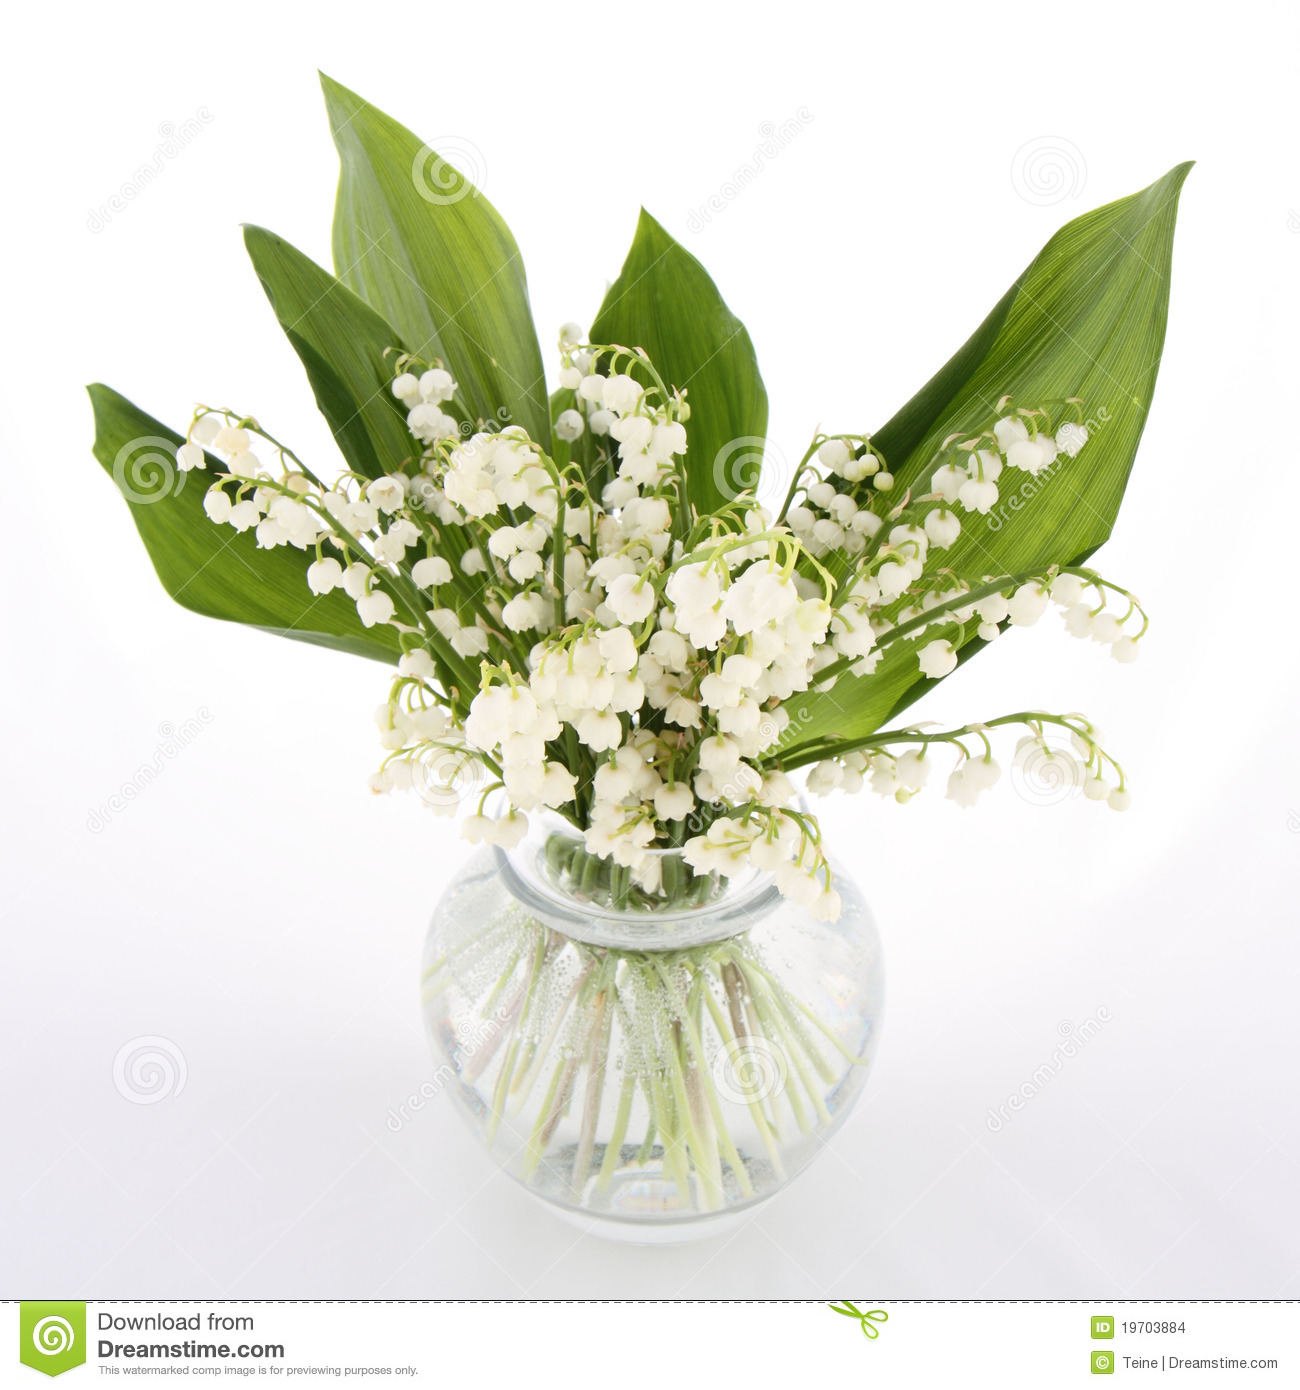 How Poisonous Is Lily of the Valley?